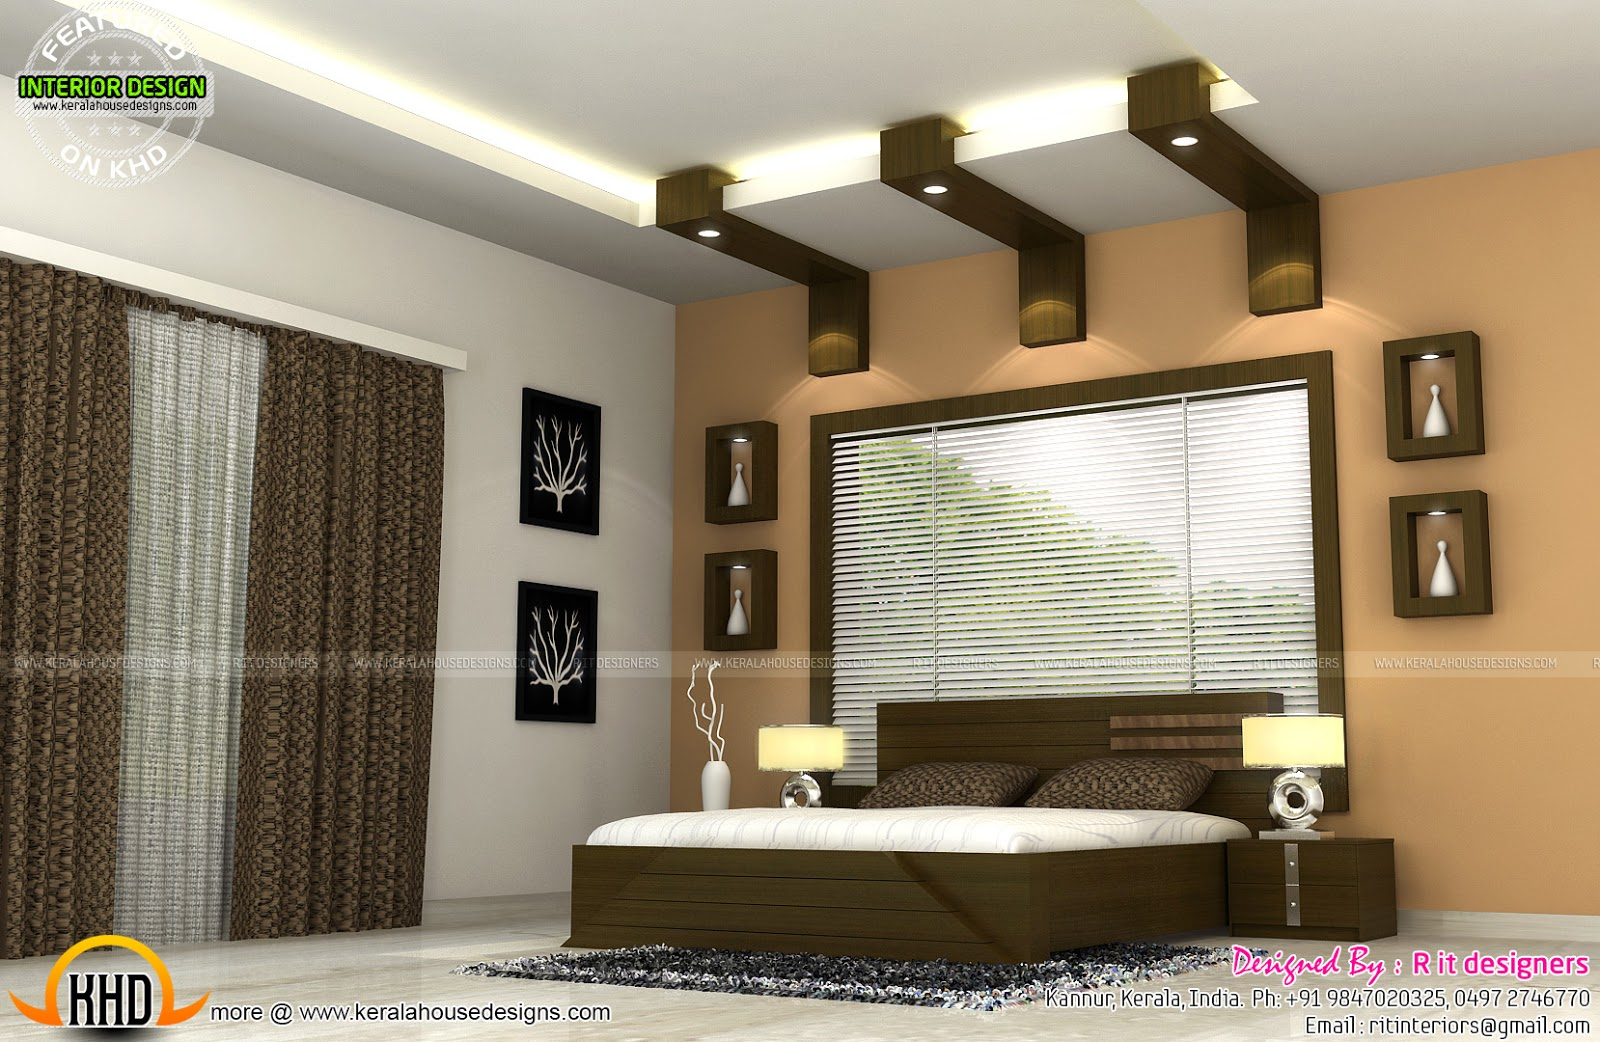 Interiors of bedrooms and kitchen kerala home design and for House interior design bedroom